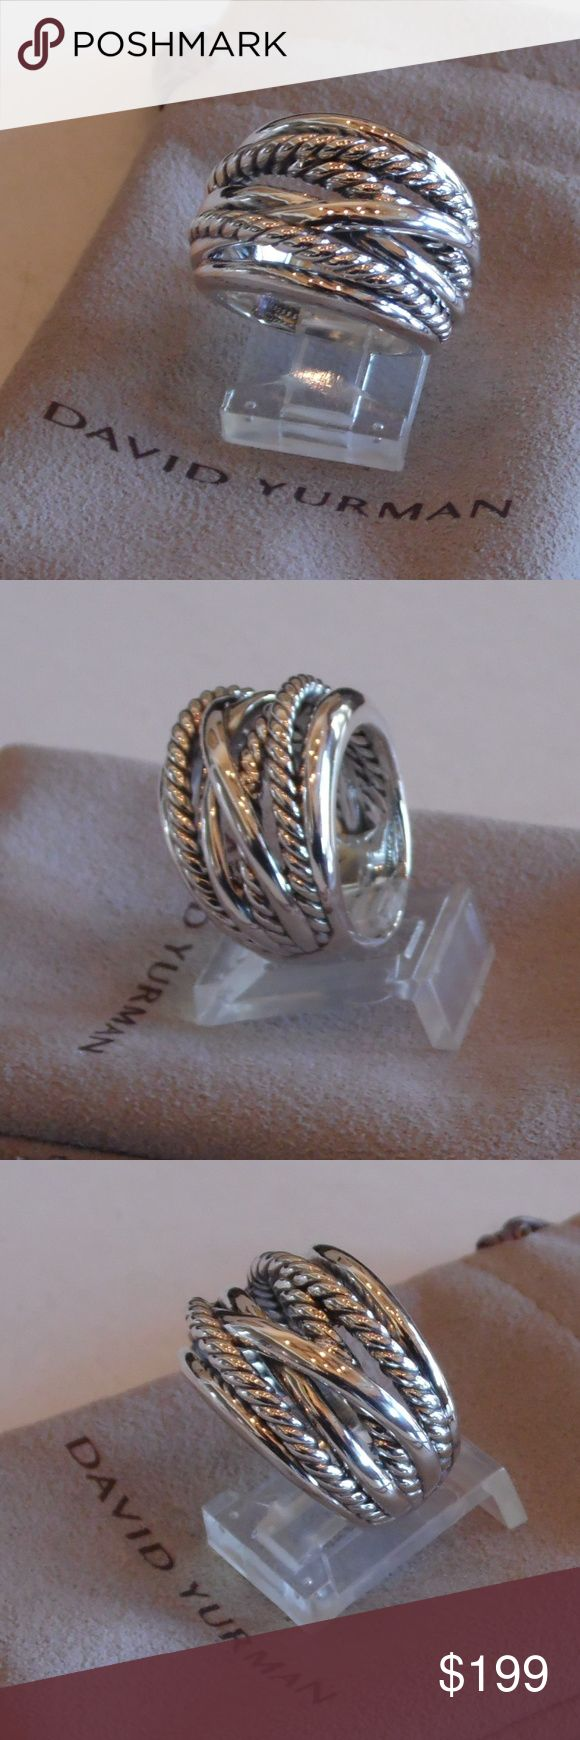 David Yurman New Wide Crossover Silver Ring 6 New without tags David Yurman New Wide Crossover Sterling Silver Ring Size 6. No signs of wear. Comes with a David Yurman white or brown pouch in excellent condition. Hallmarked copyright symbol D.Y. 925.  Face measures 18mm wide and 8mm wide on the underside of the band (approximate).  The hallmark is small and hard to see especially if held up to the light because is it so shiny. Recommend using a magnifying glass if you can't see it.  Picture…